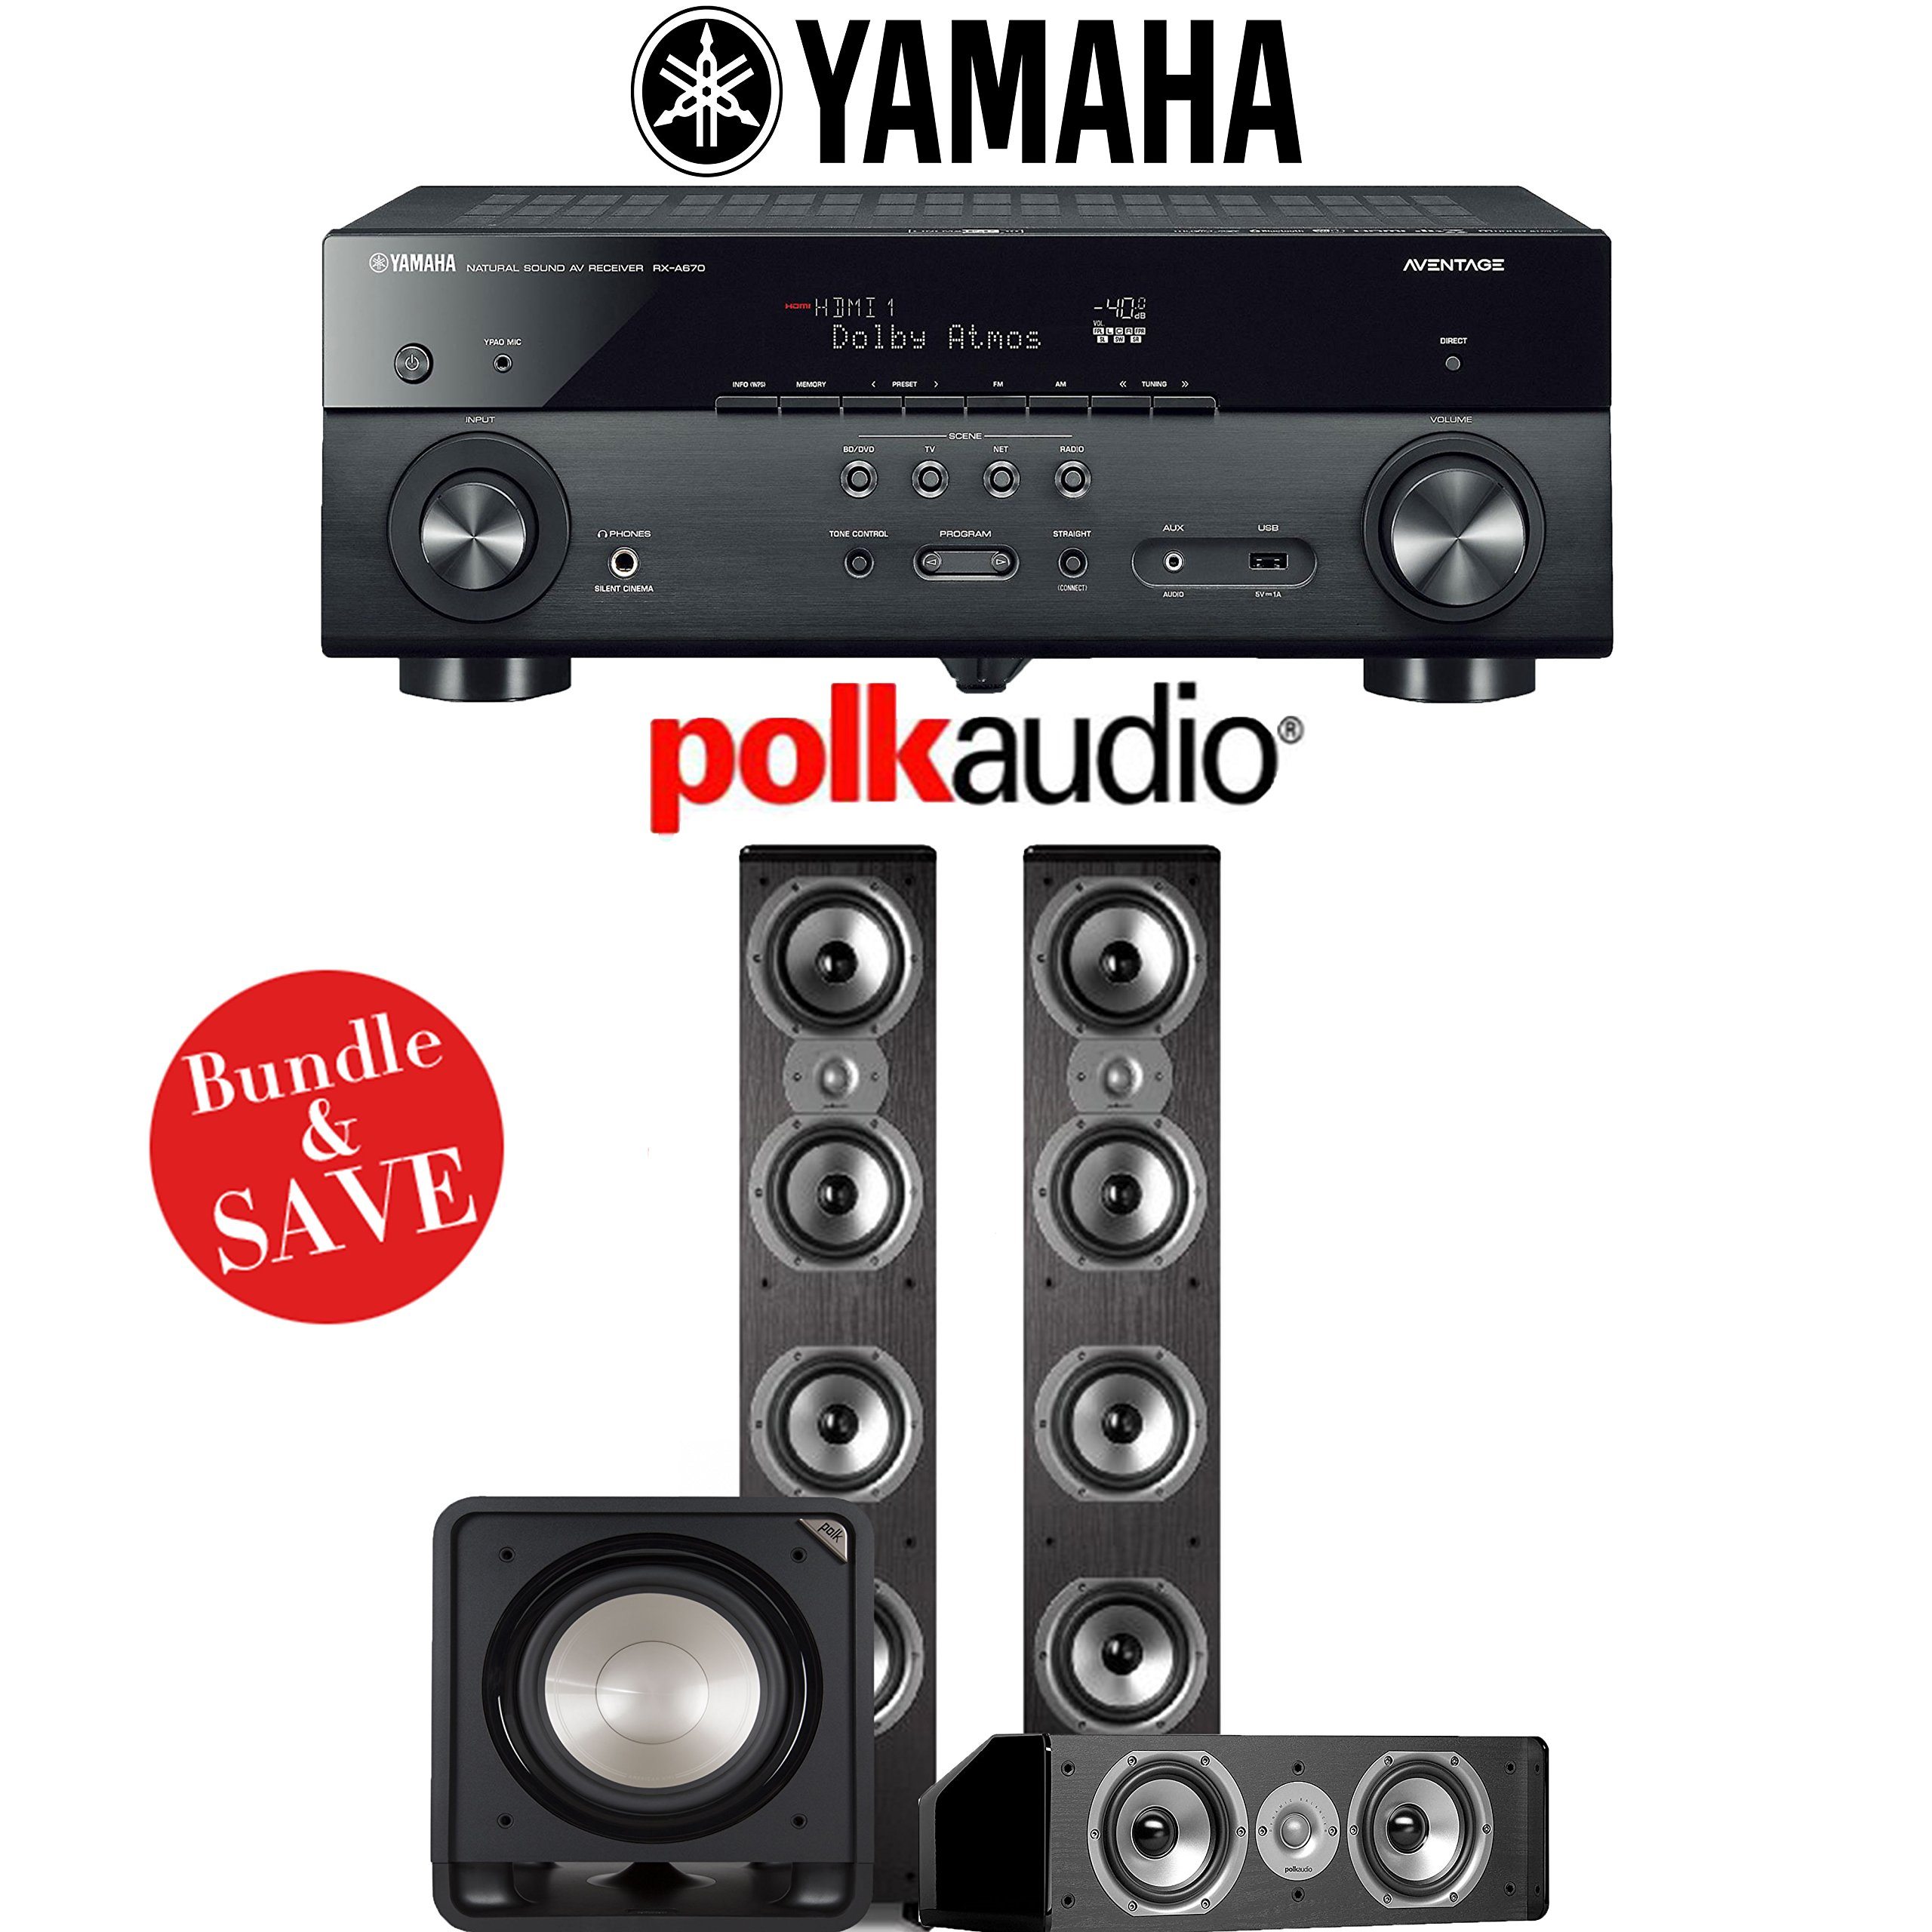 Yamaha AVENTAGE RX-A670BL 7.2-Ch 4K Network AV Receiver + Polk Audio TSi 500 + Polk Audio CS10 + Polk Audio HTS12 - 3.1-Ch Home Theater Package by Polk Audio